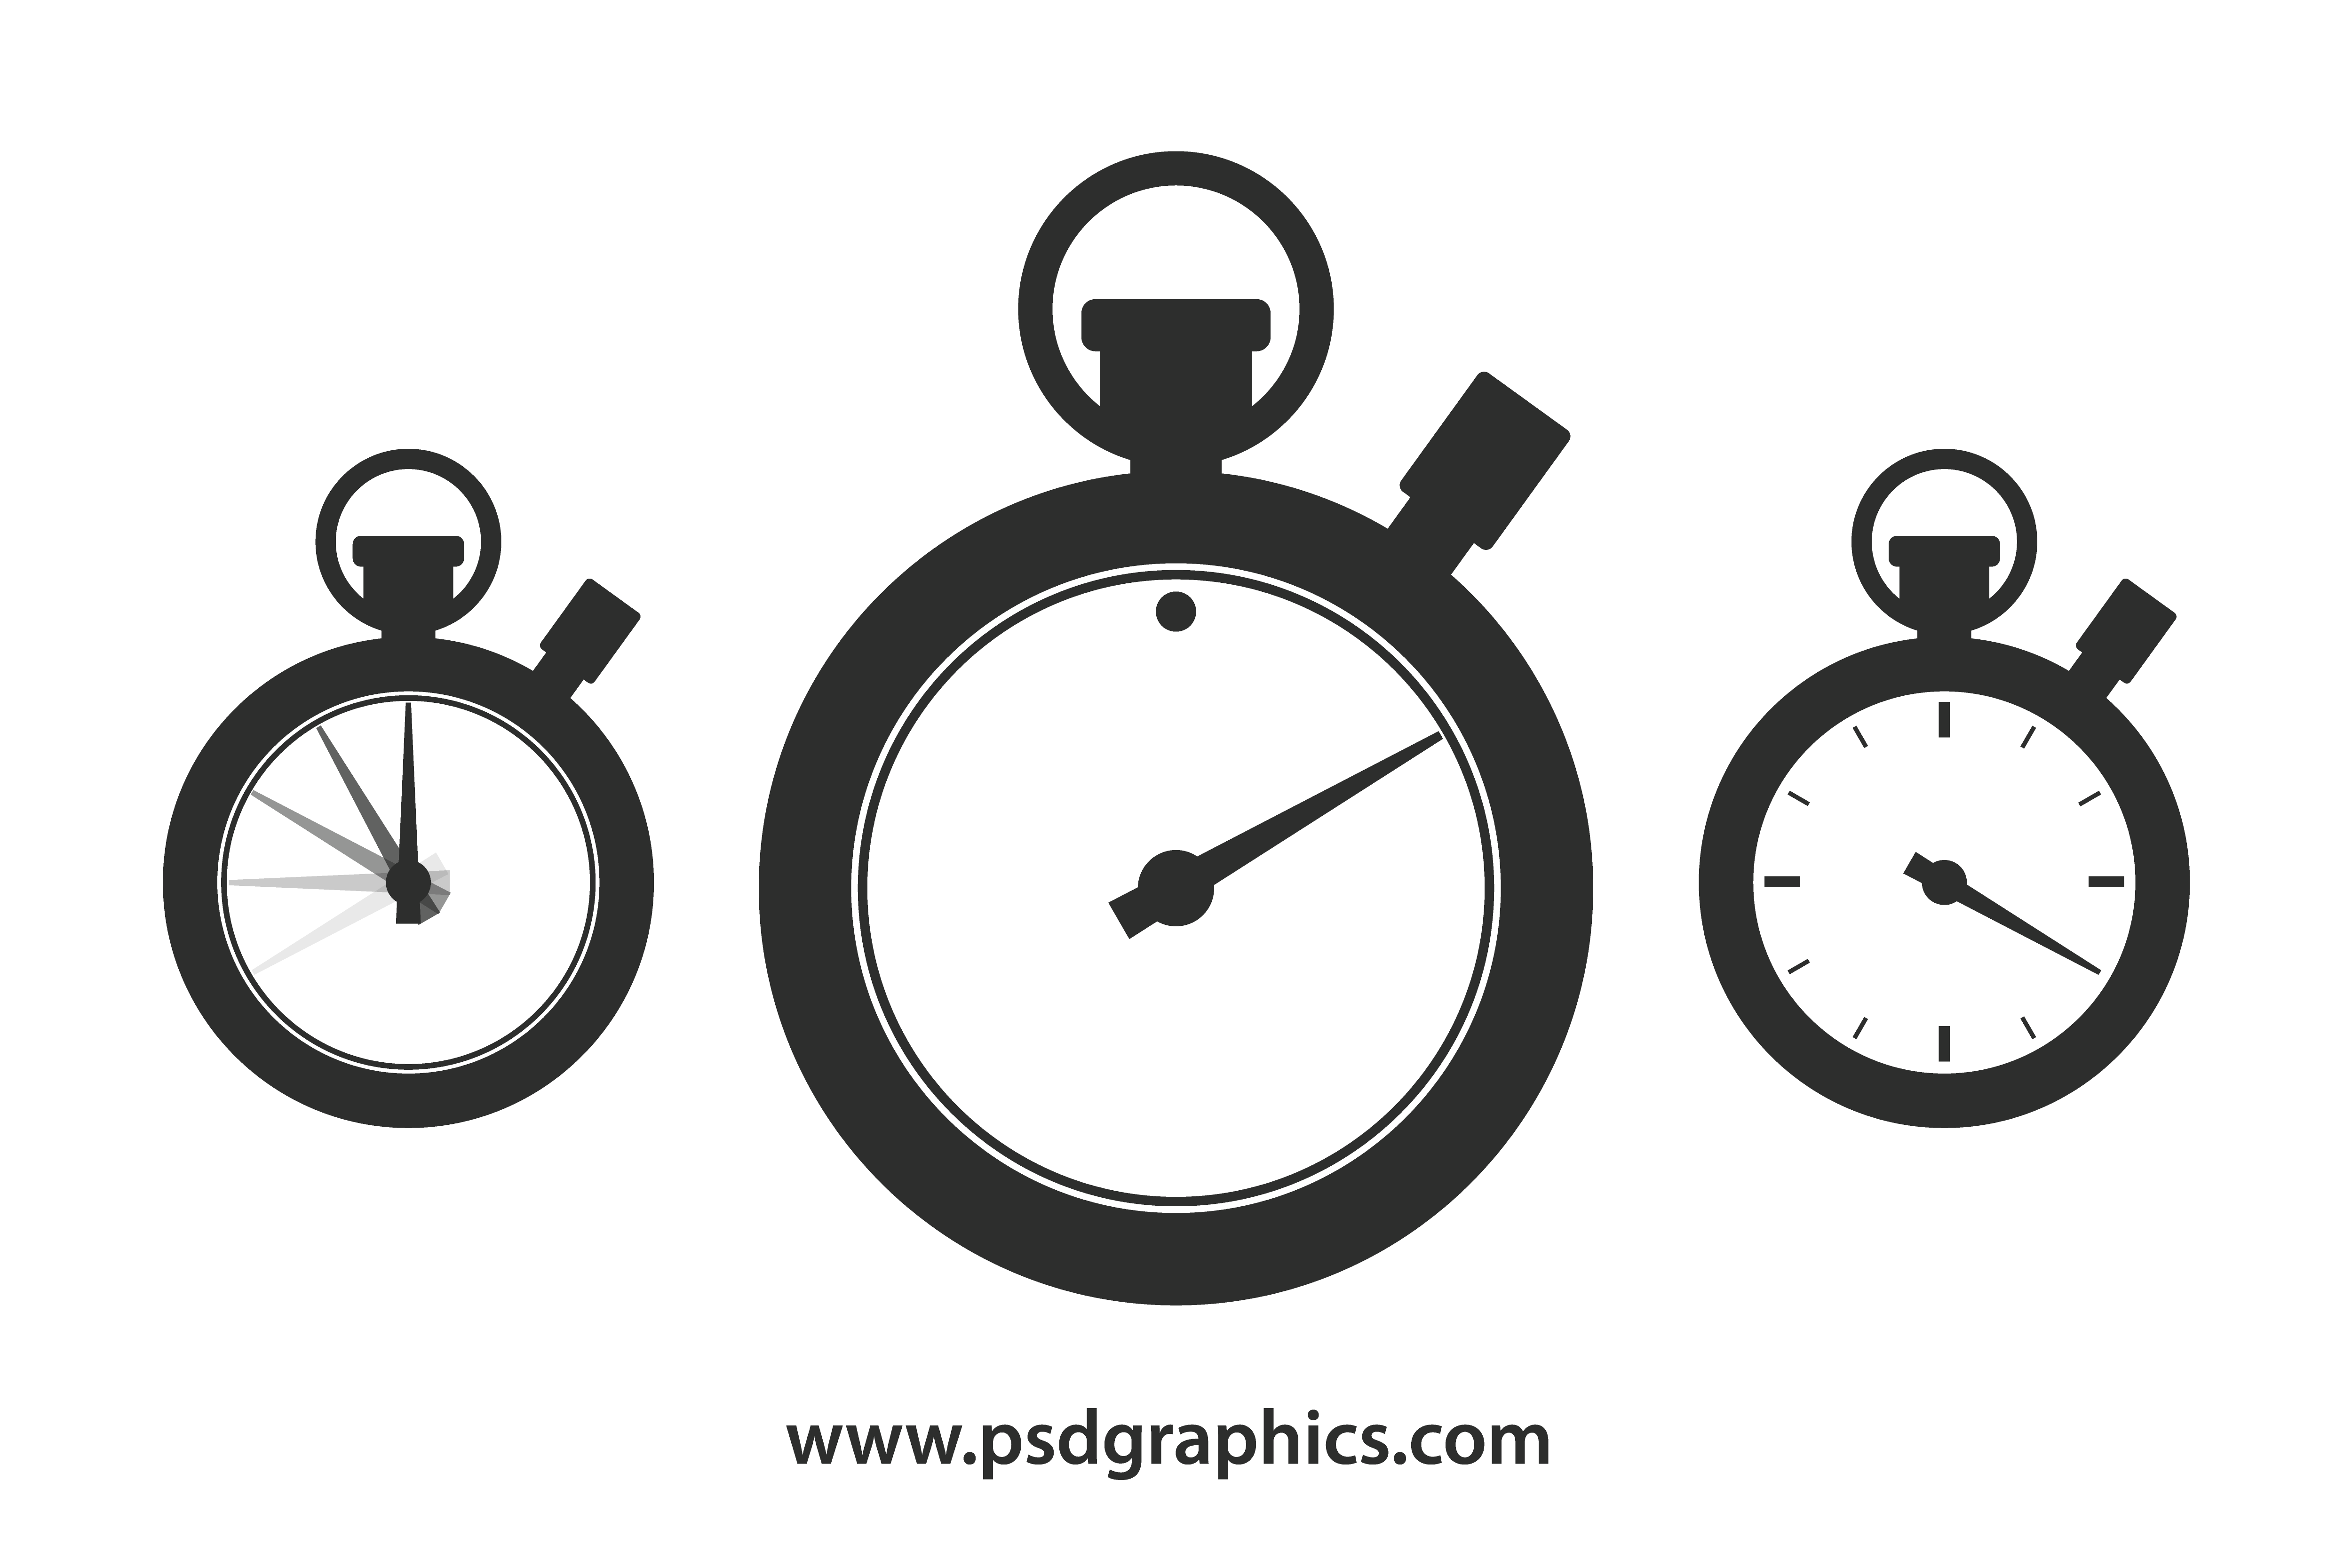 Shape template psdgraphics png. Stopwatch clipart vector